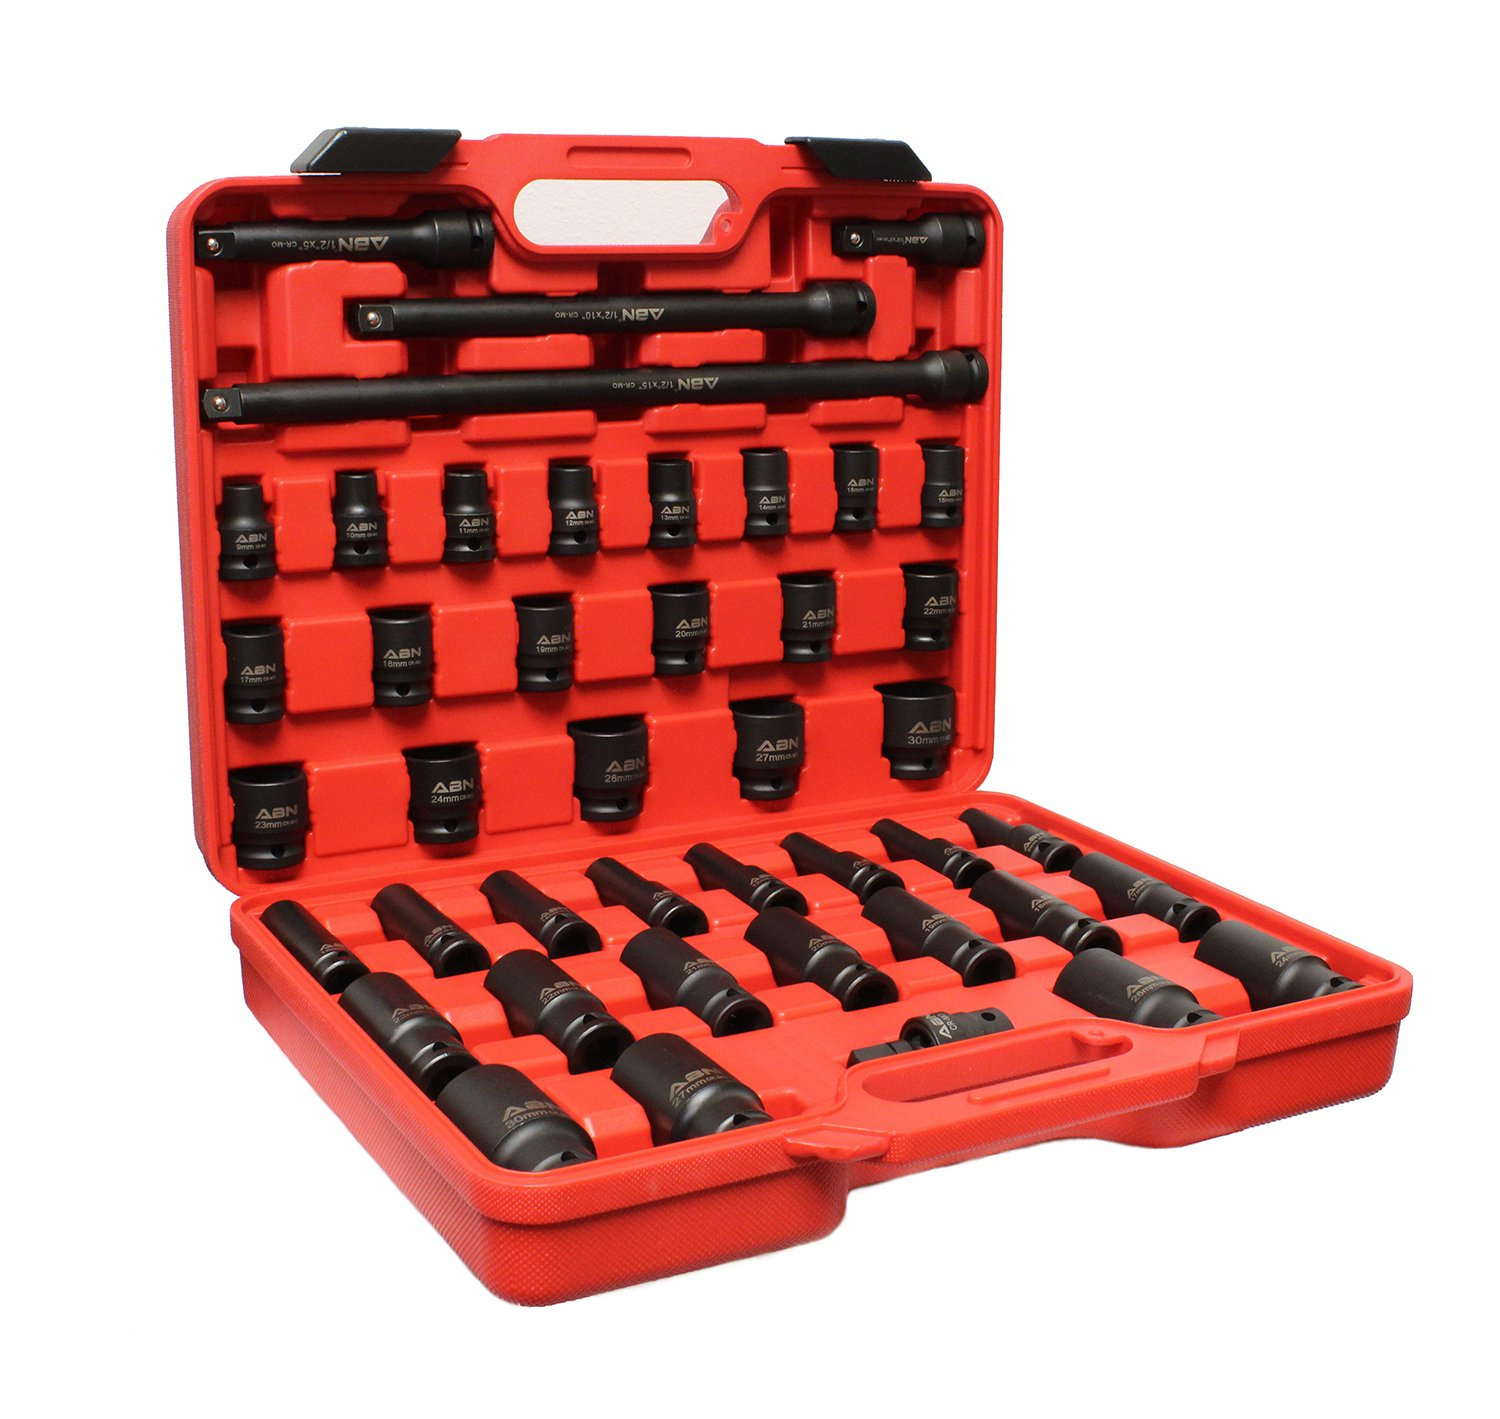 ABN 1/2in Drive Metric Master Deep & Shallow Impact Socket 43-Piece Set 9mm to 30mm with Extensions & Swivel Joint by ABN